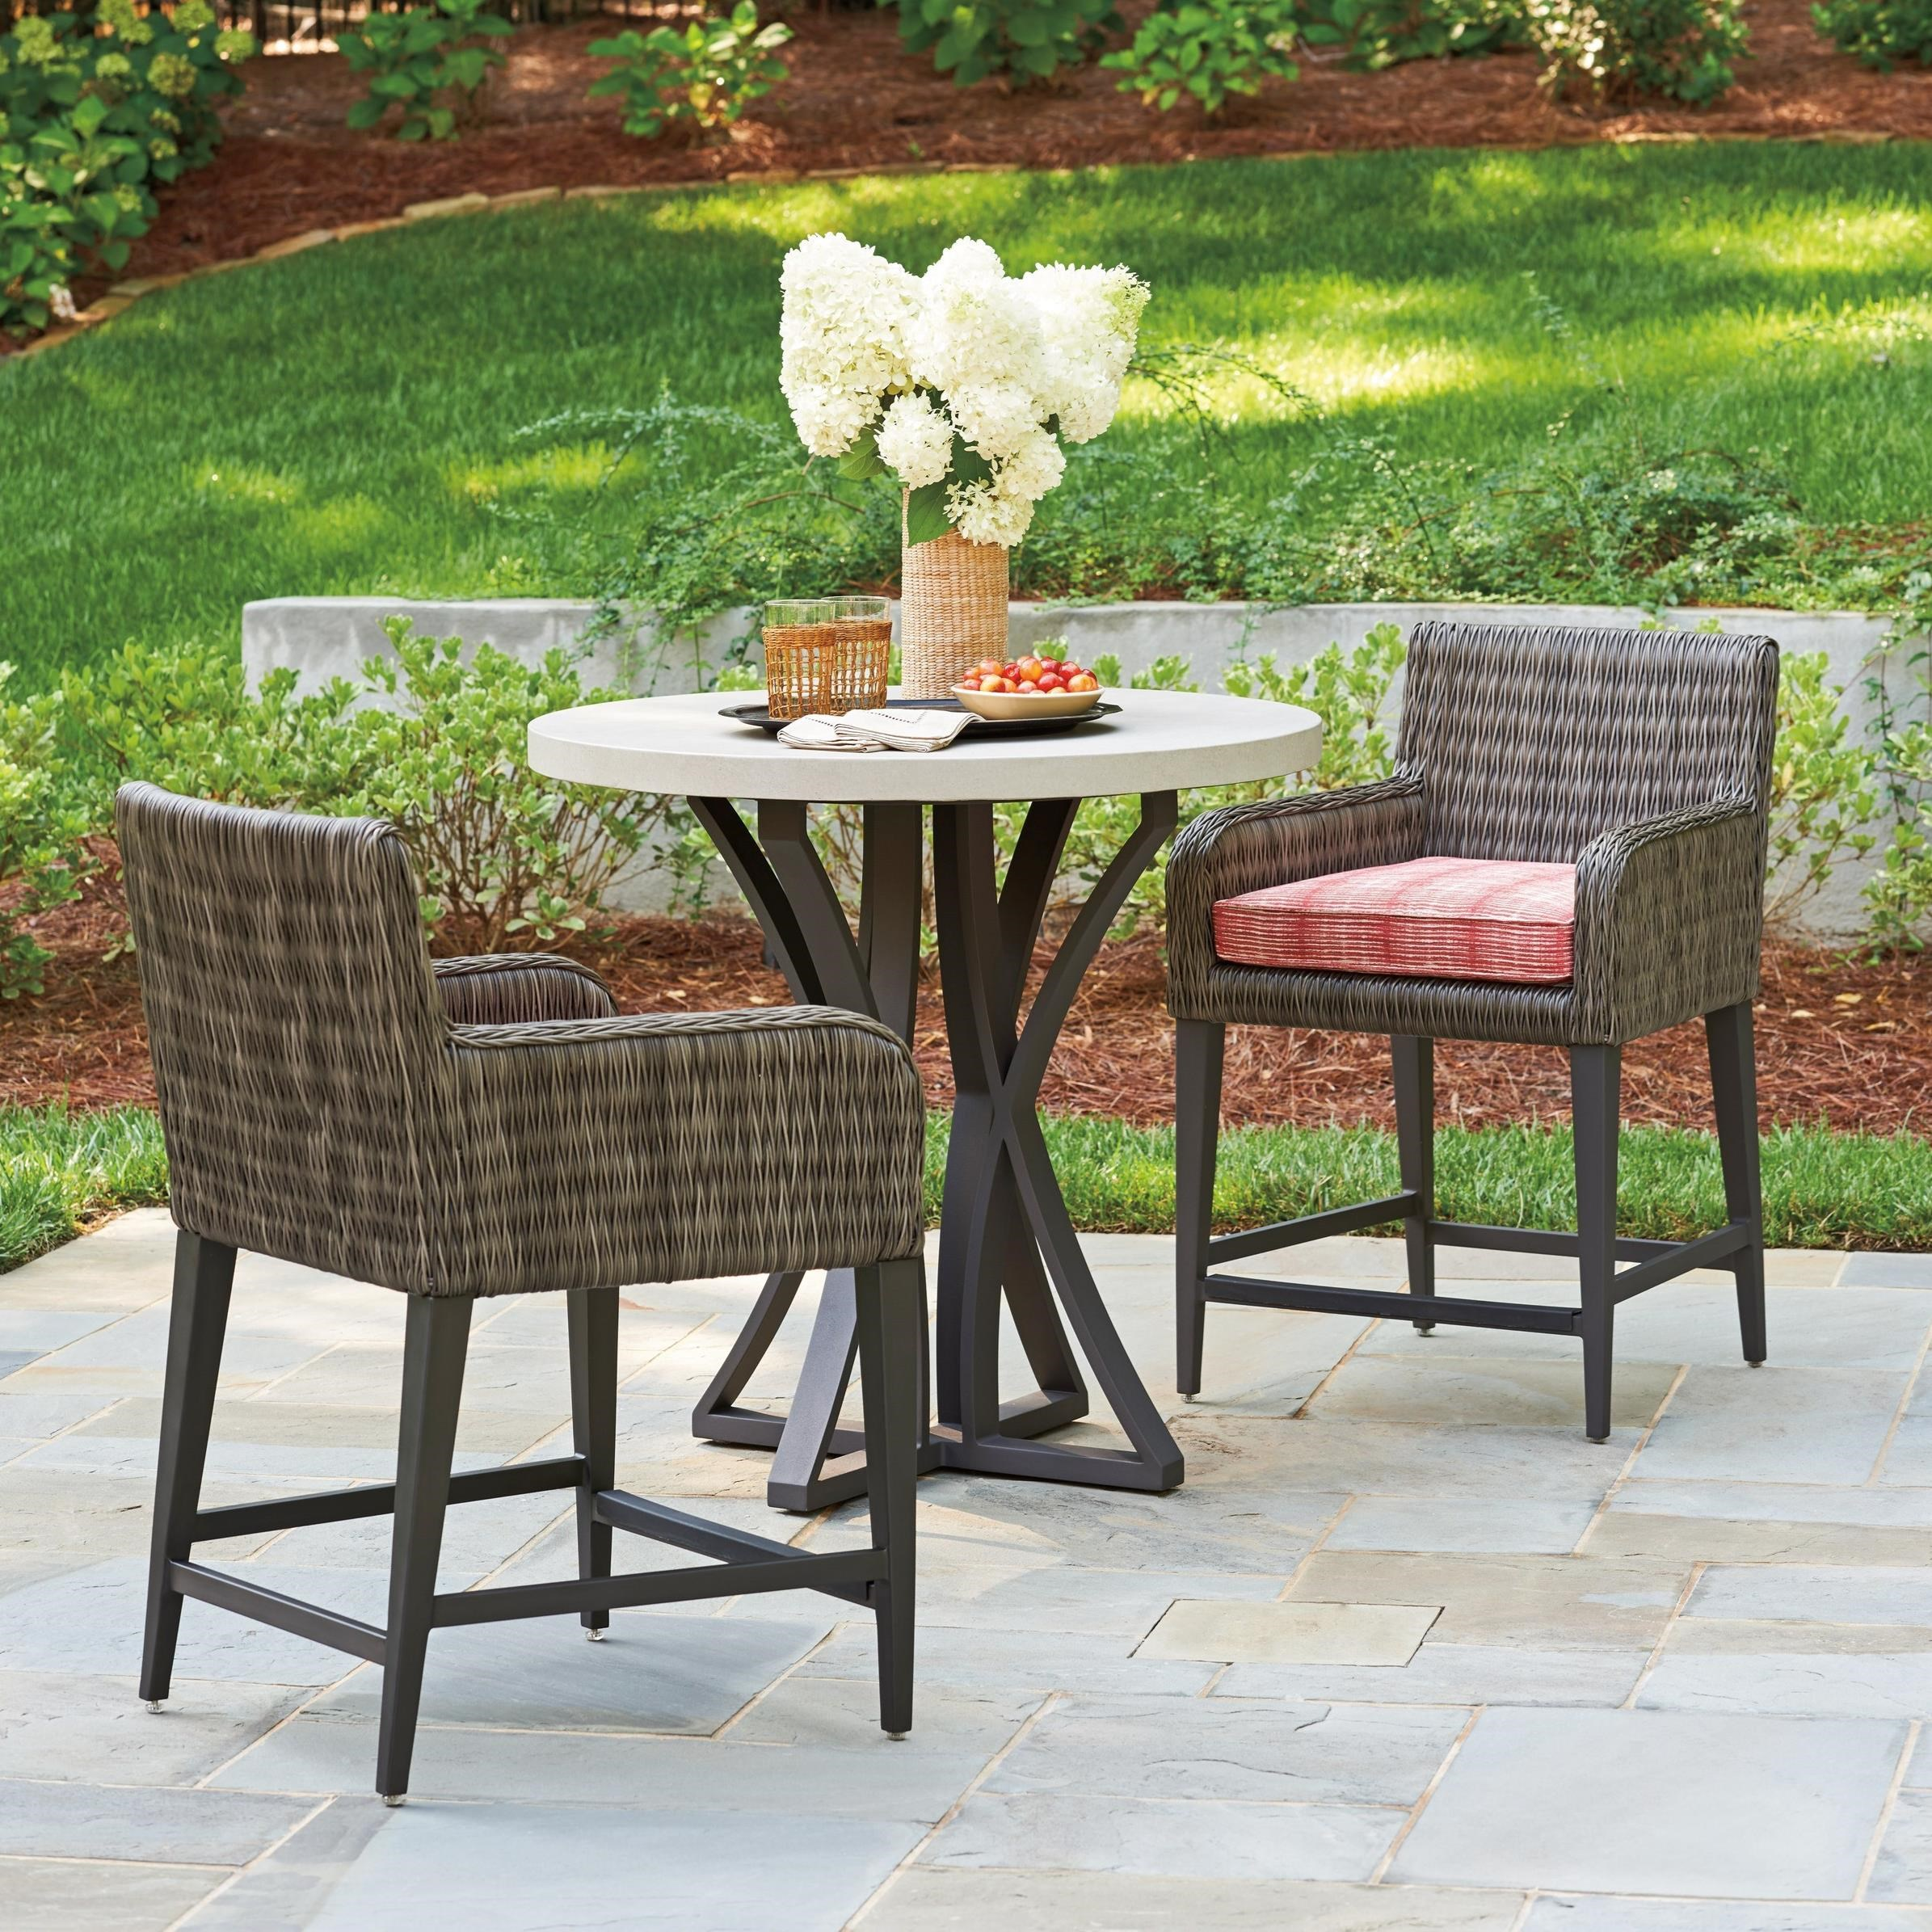 3 pc Outdoor Pub Dining Set